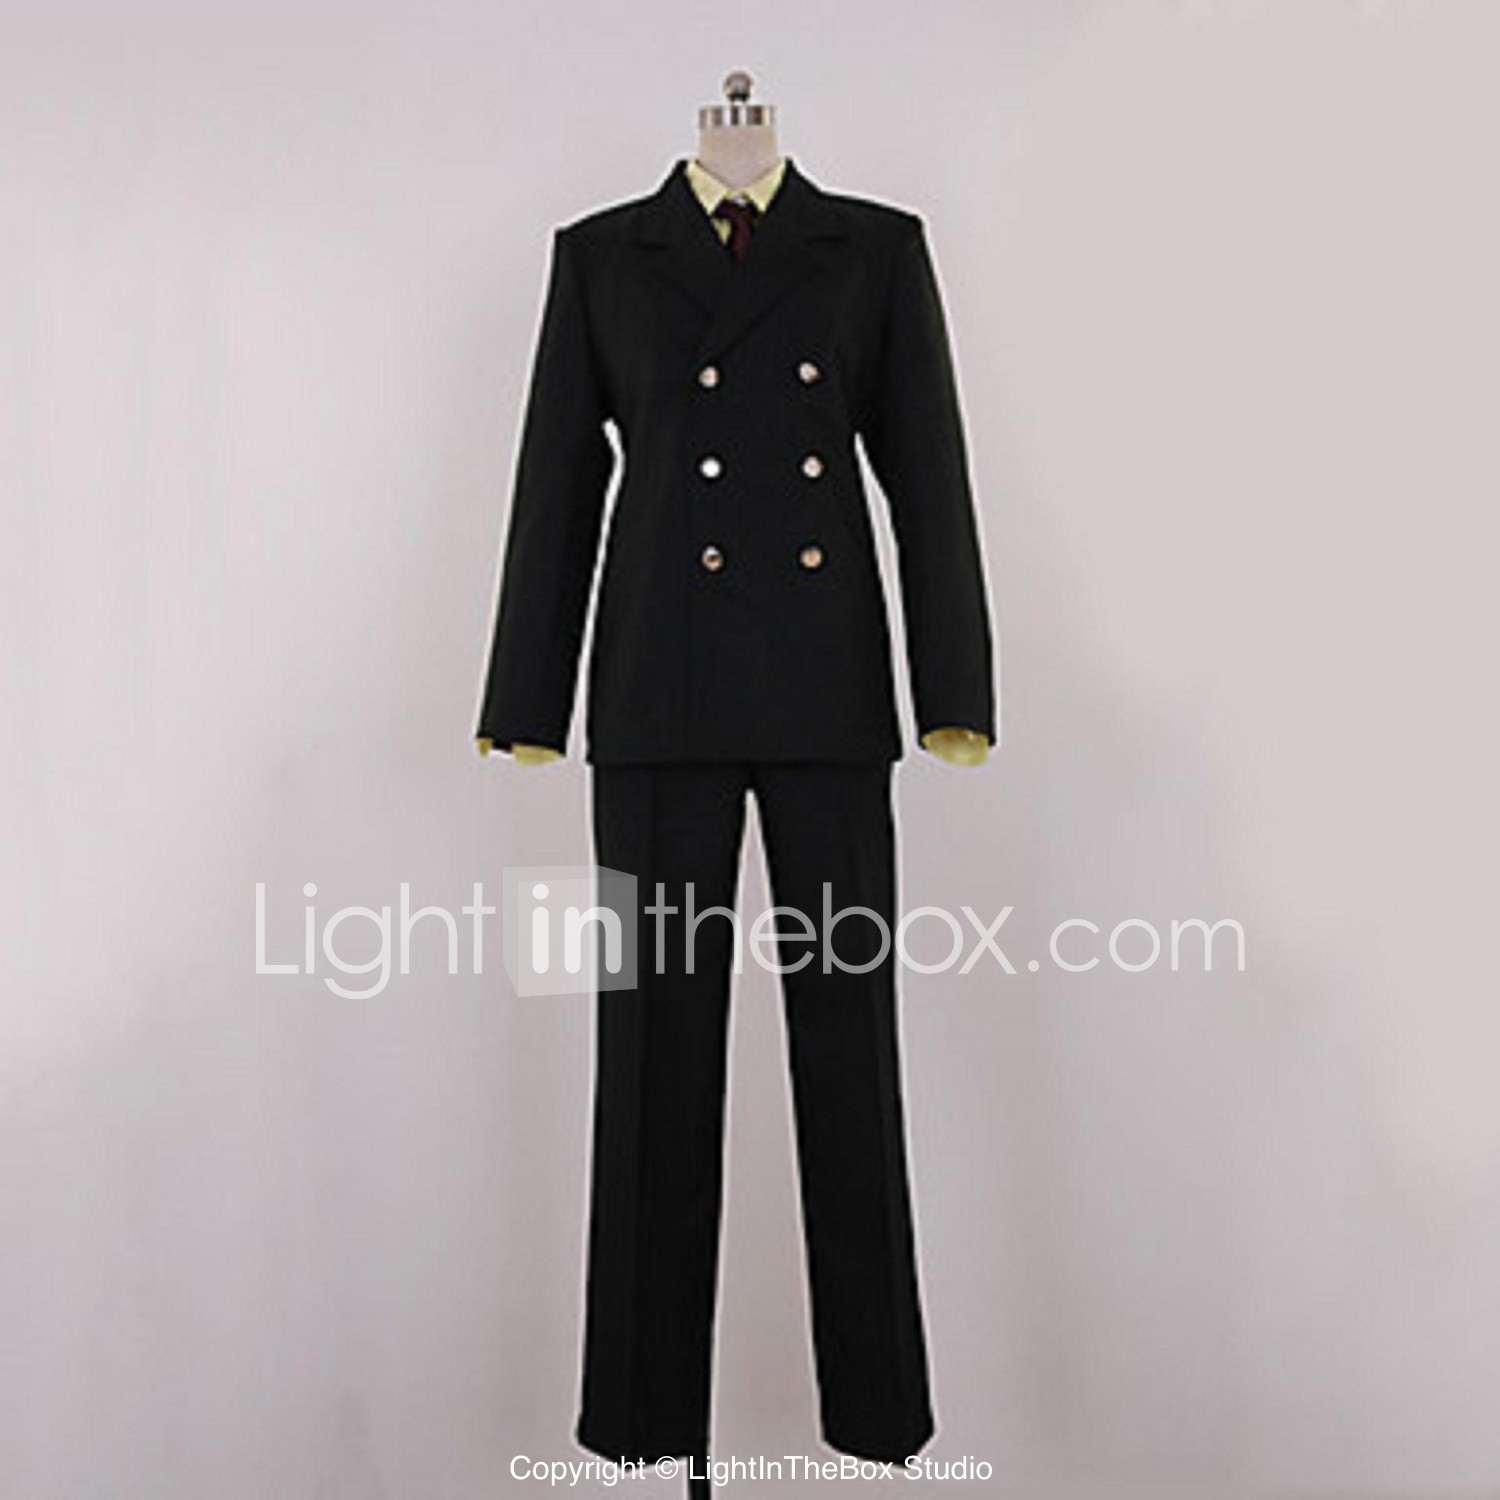 Vquhil Law One Piece Jacket